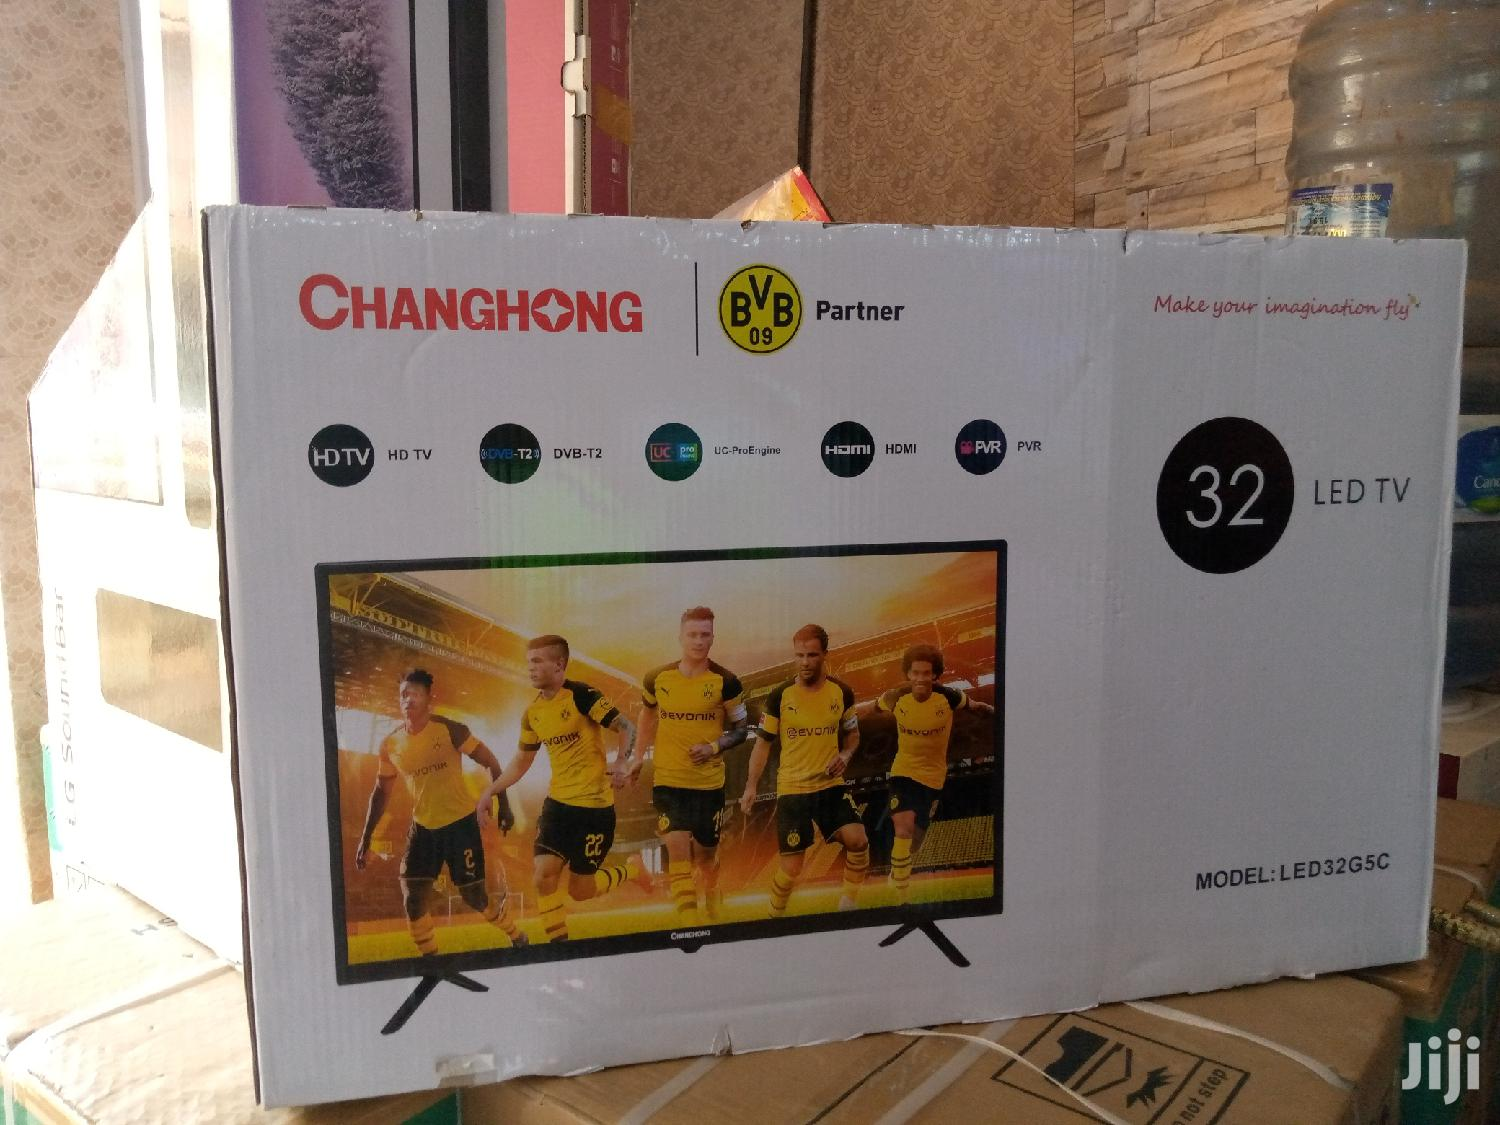 Changhong Tv 32 Inches | TV & DVD Equipment for sale in Kampala, Central Region, Uganda